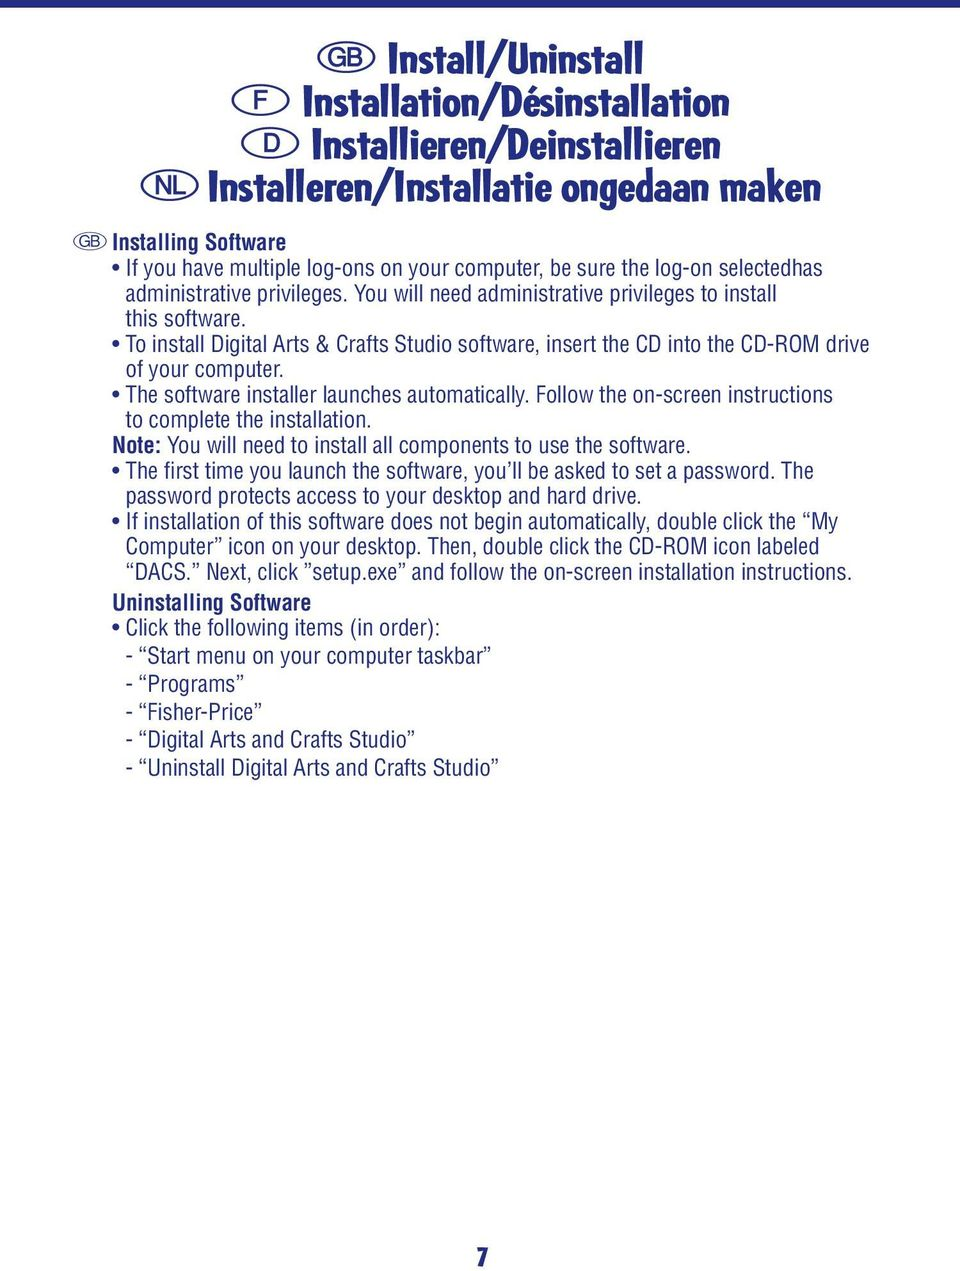 To install Digital Arts & Crafts Studio software, insert the CD into the CD-ROM drive of your computer. The software installer launches automatically.